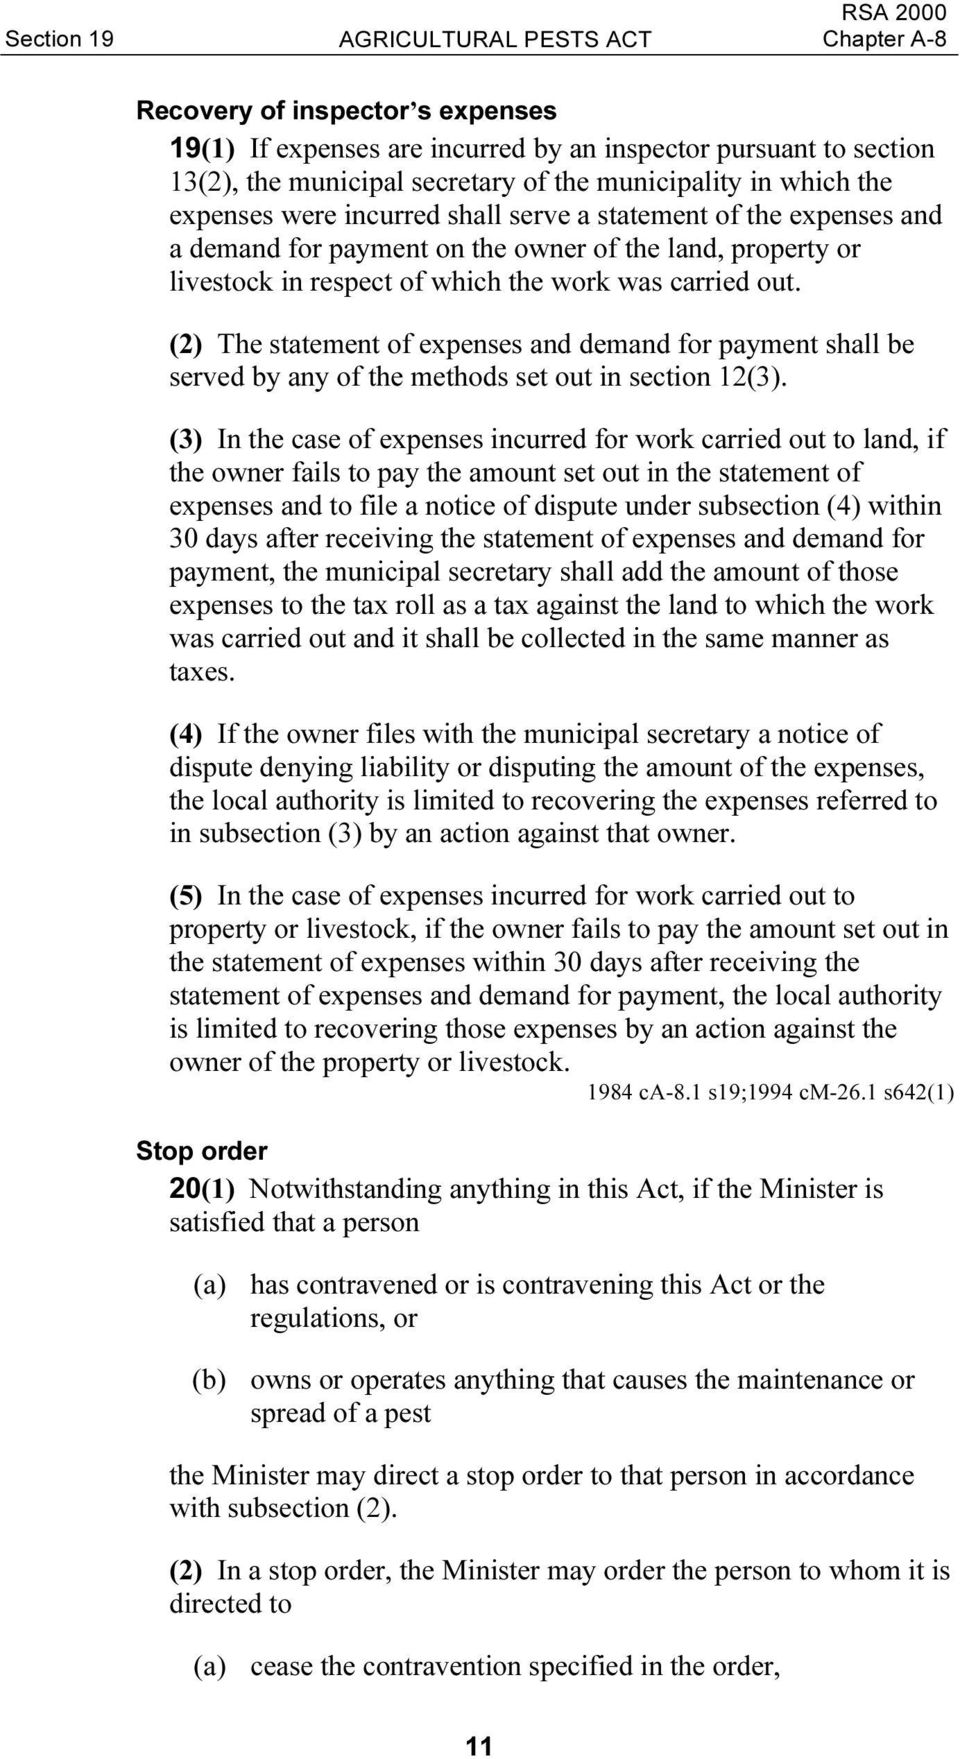 (2) The statement of expenses and demand for payment shall be served by any of the methods set out in section 12(3).